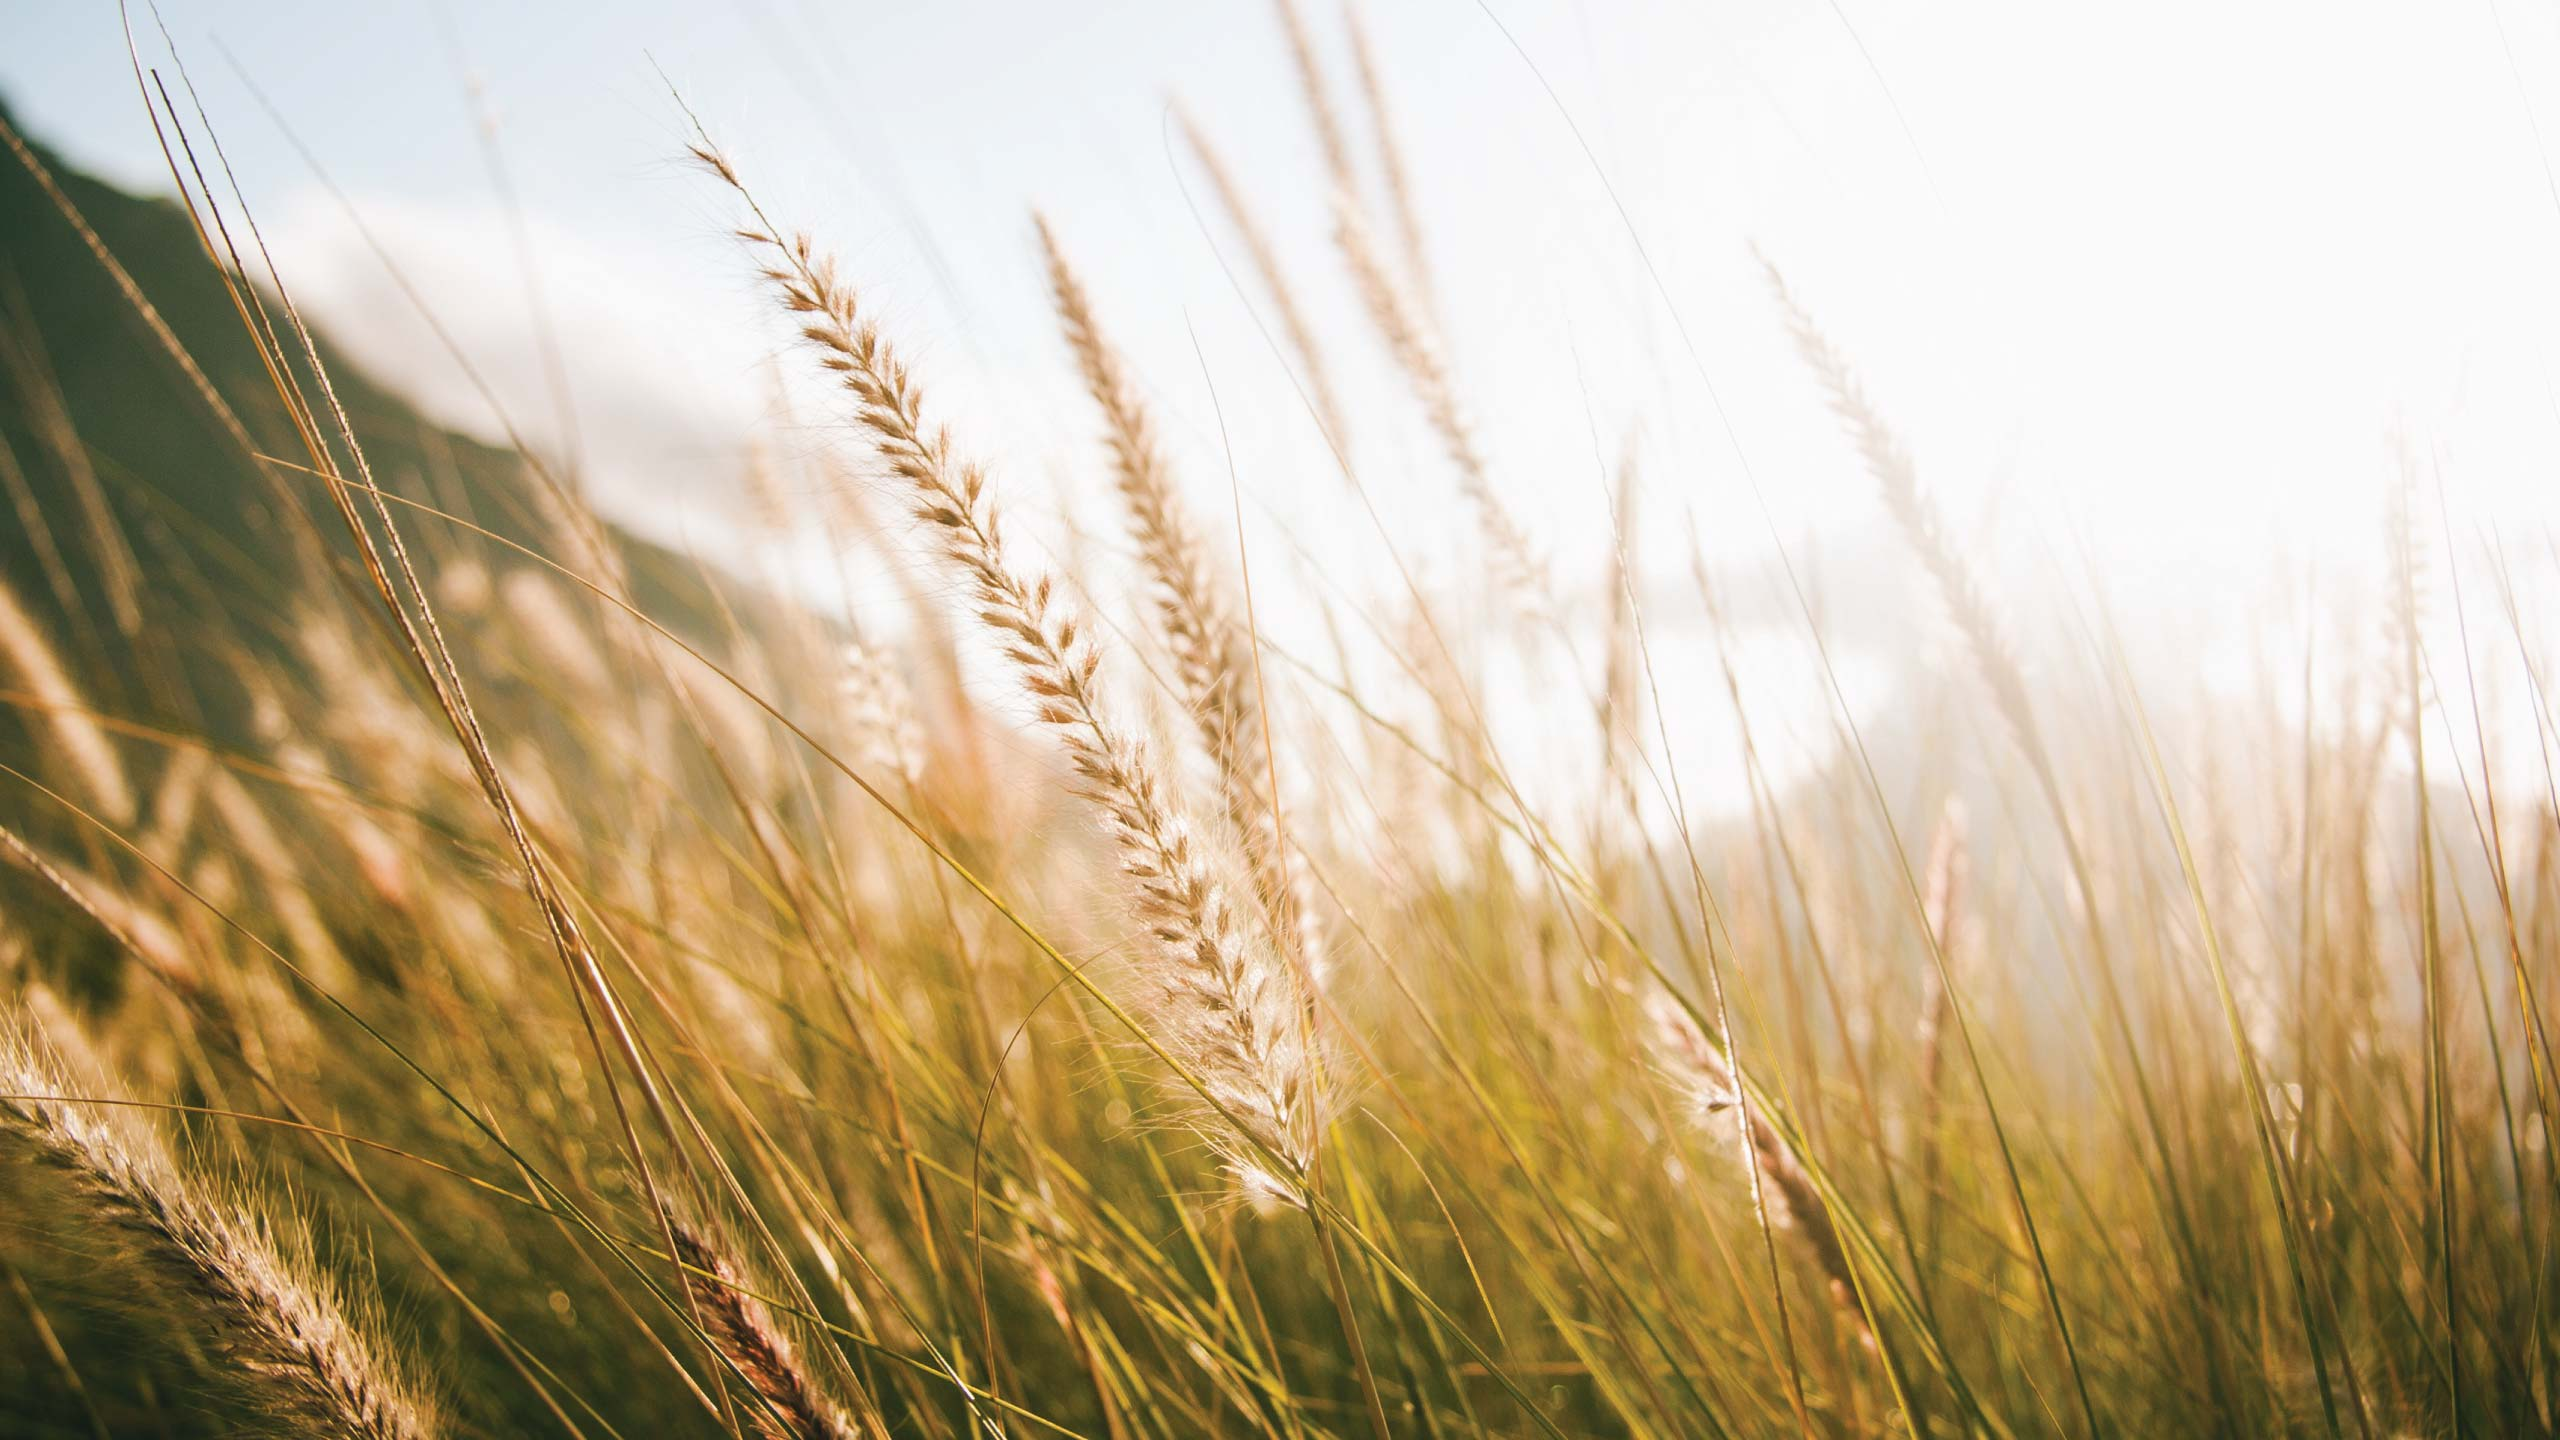 Uprooting the weeds from the wheat